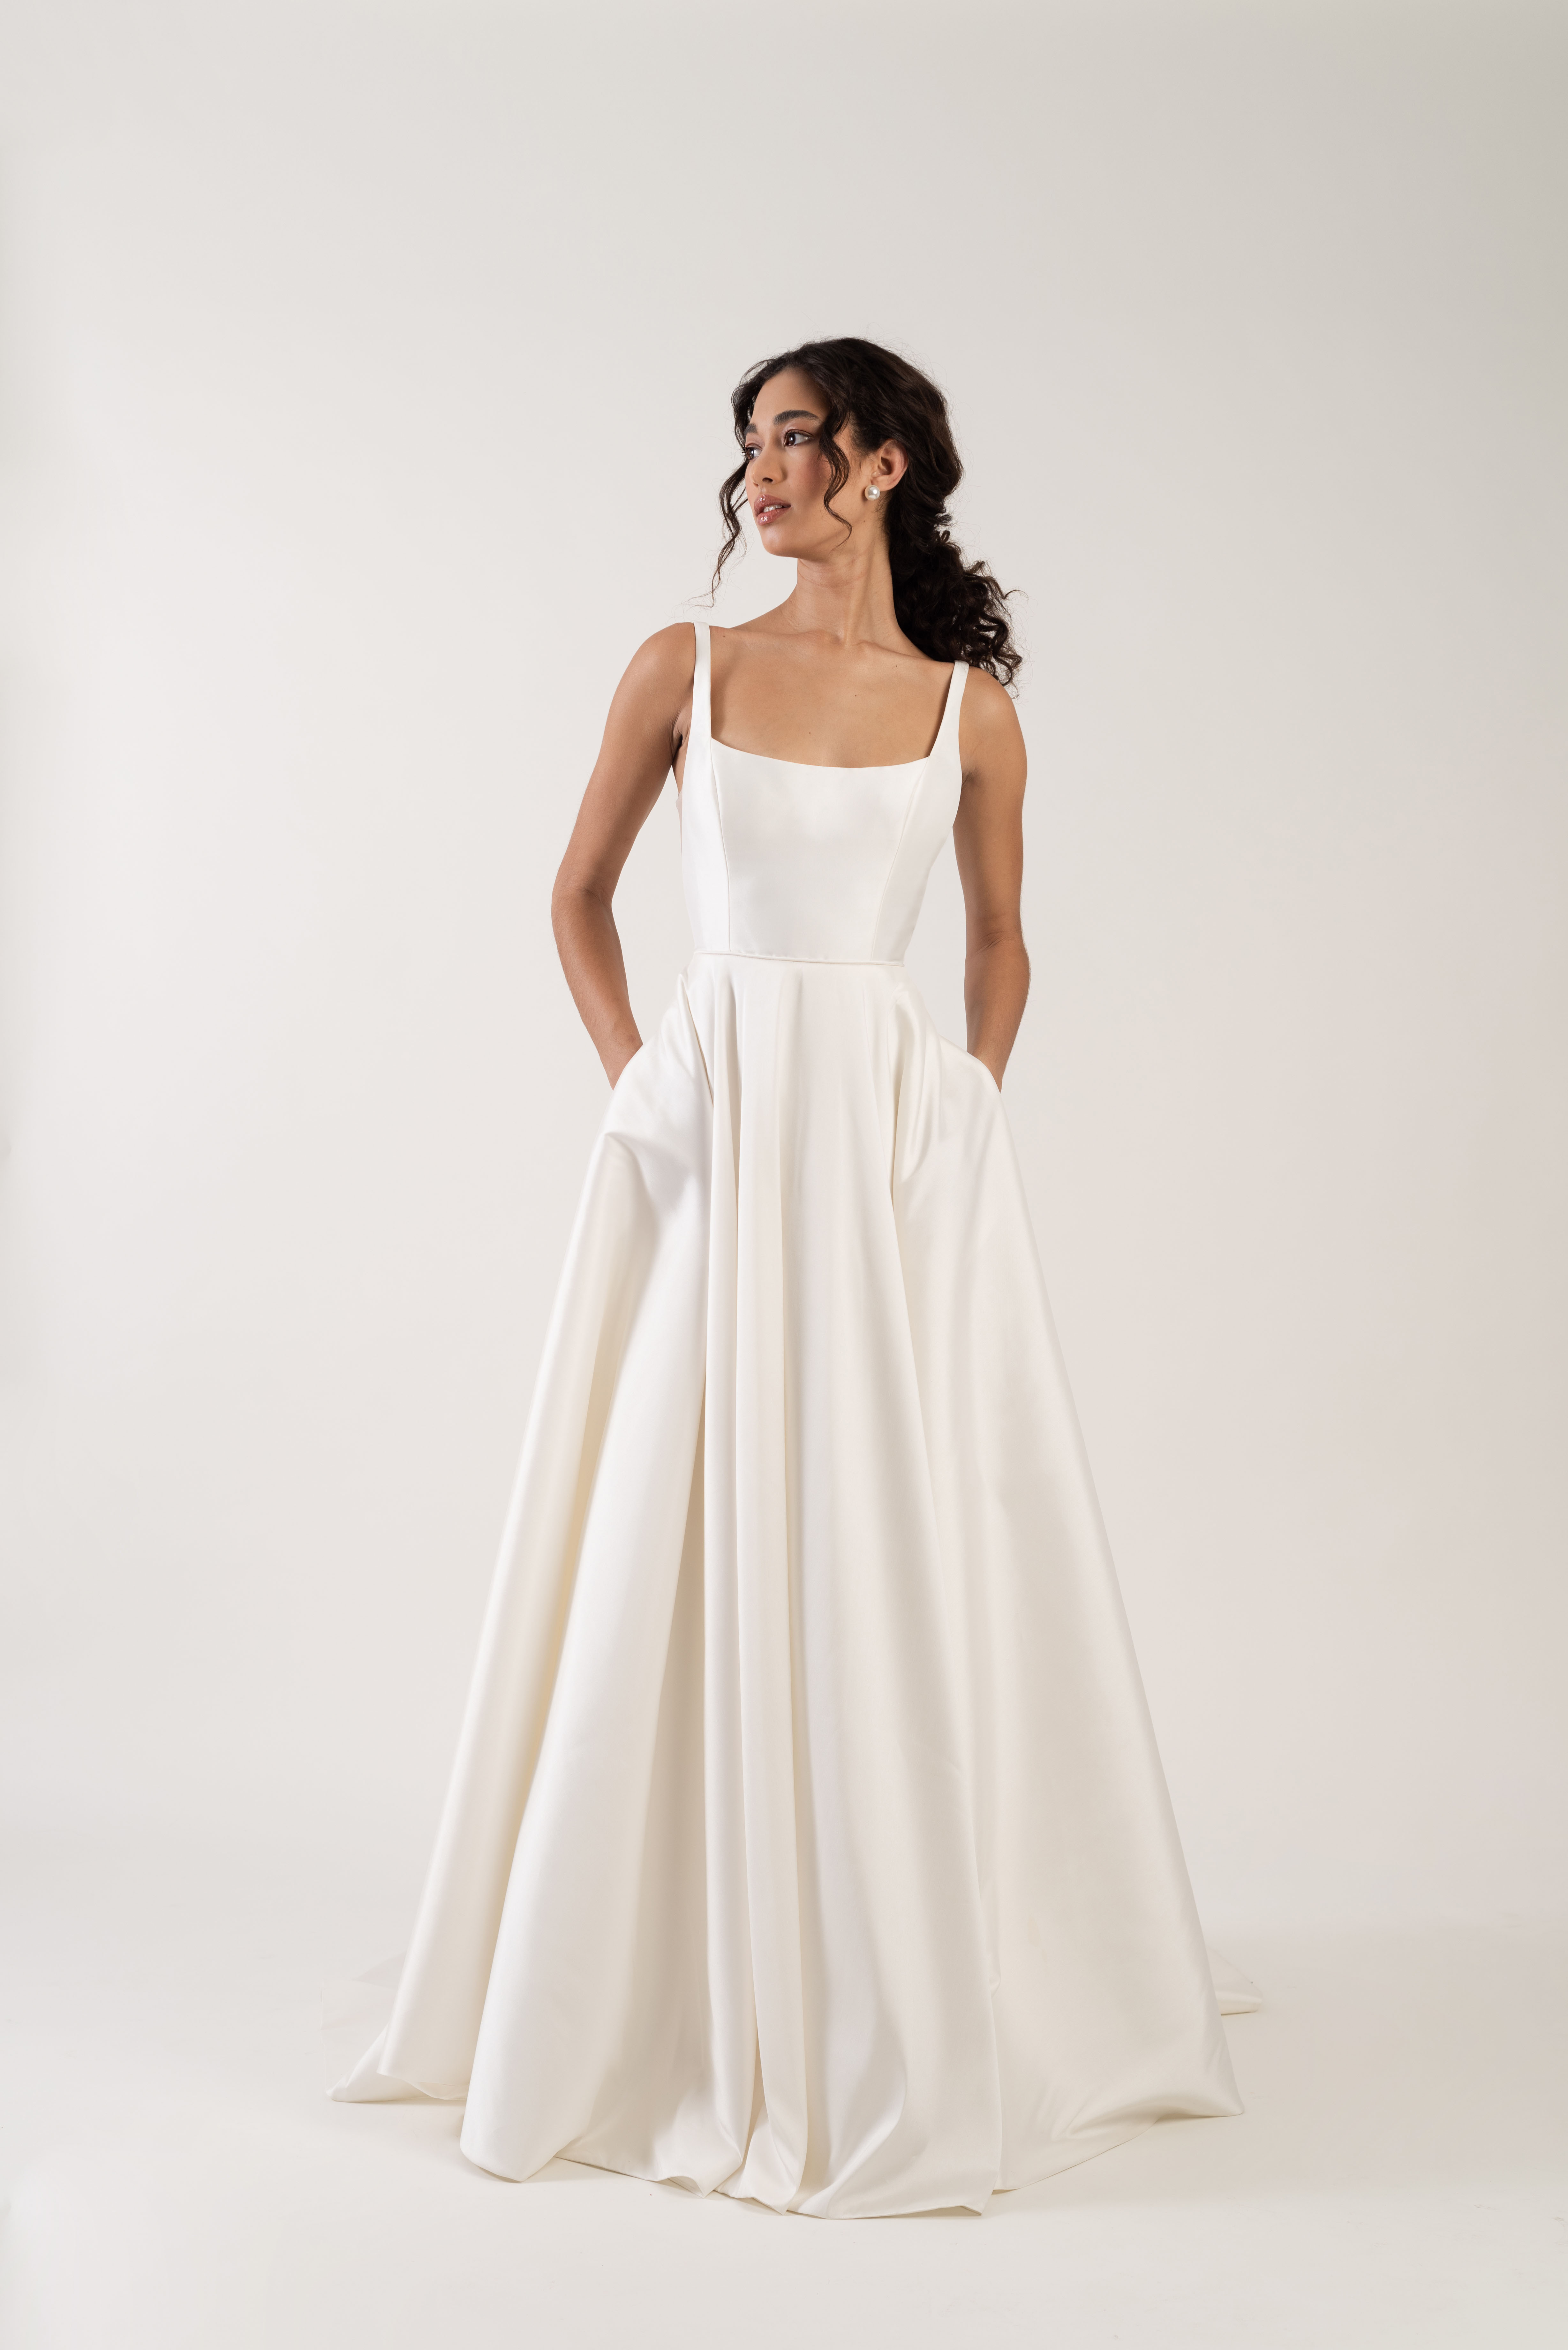 spaghetti strap square neckline pockets a-line wedding dress Jenny by Jenny Yoo Spring 2020